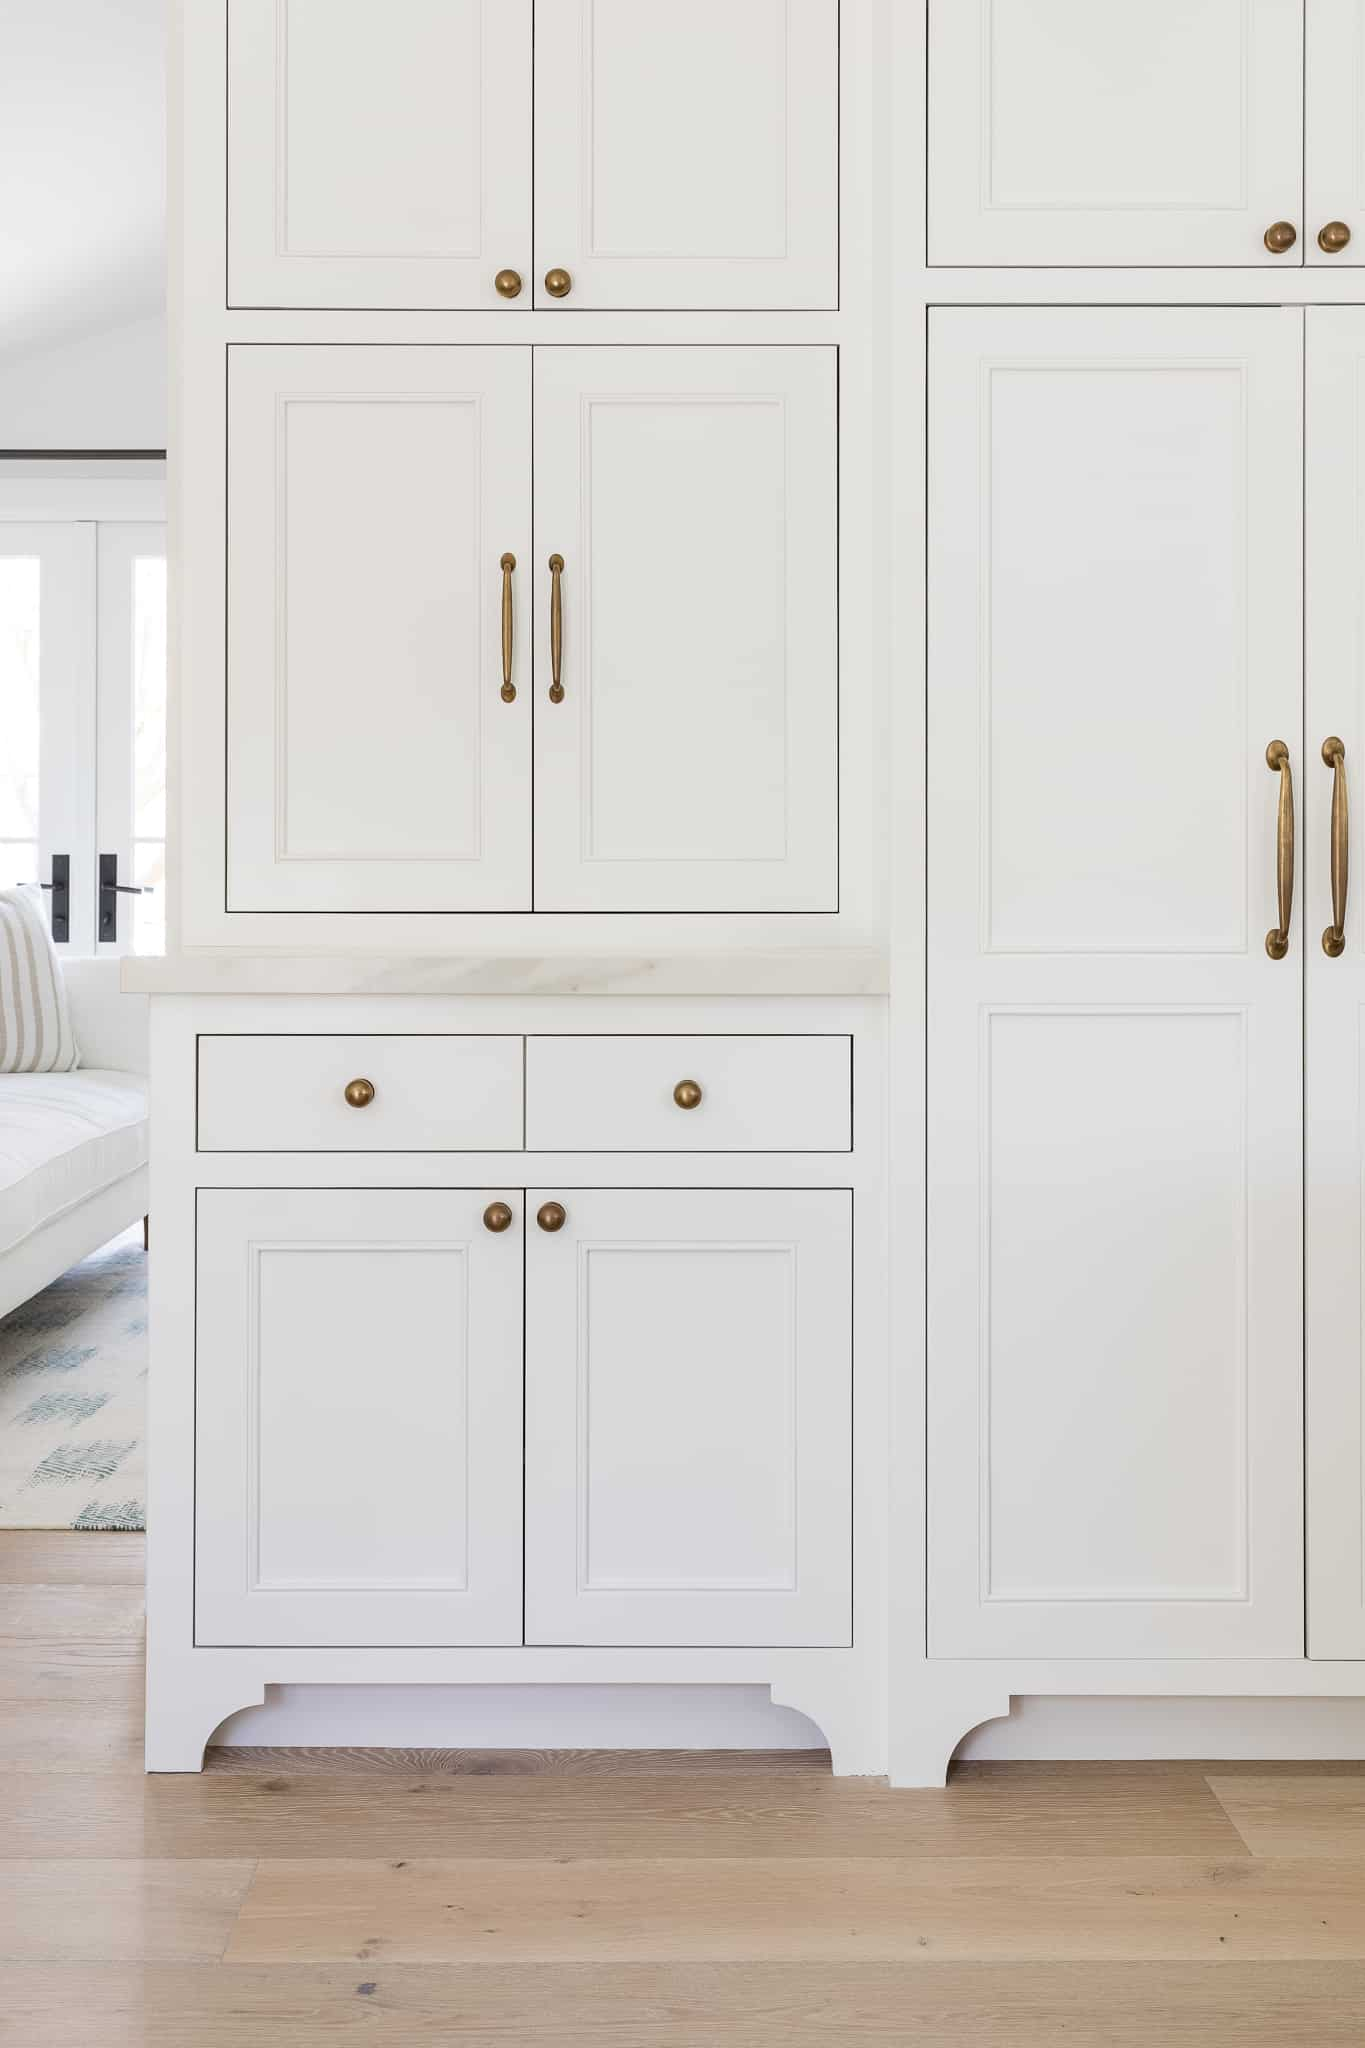 Kitchen Cabinet Knobs and Pulls: A Perfect Pair - Mindy Gayer Design - Port Newport Project